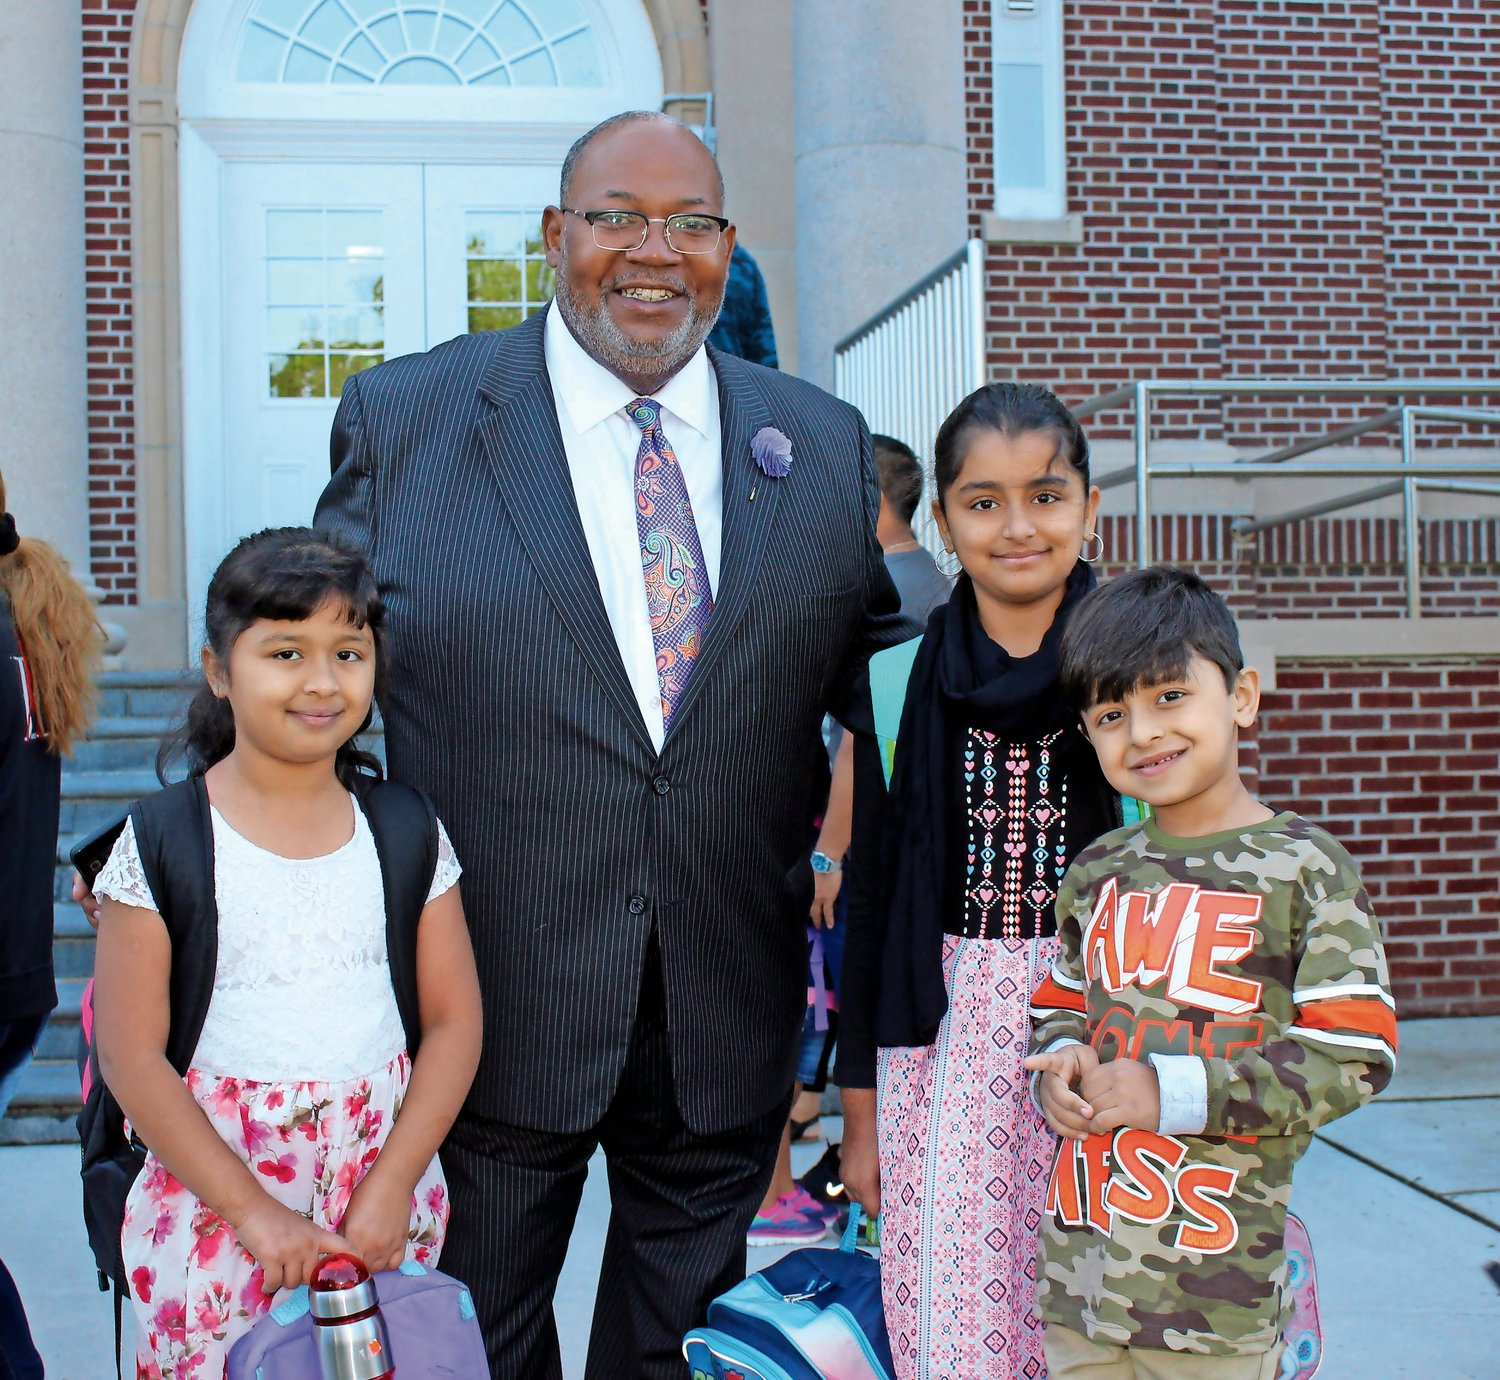 Al Harper greeted, from left, Sara and Fiza Shahdat and Tabish Bhatti on the first day of school in 2017.